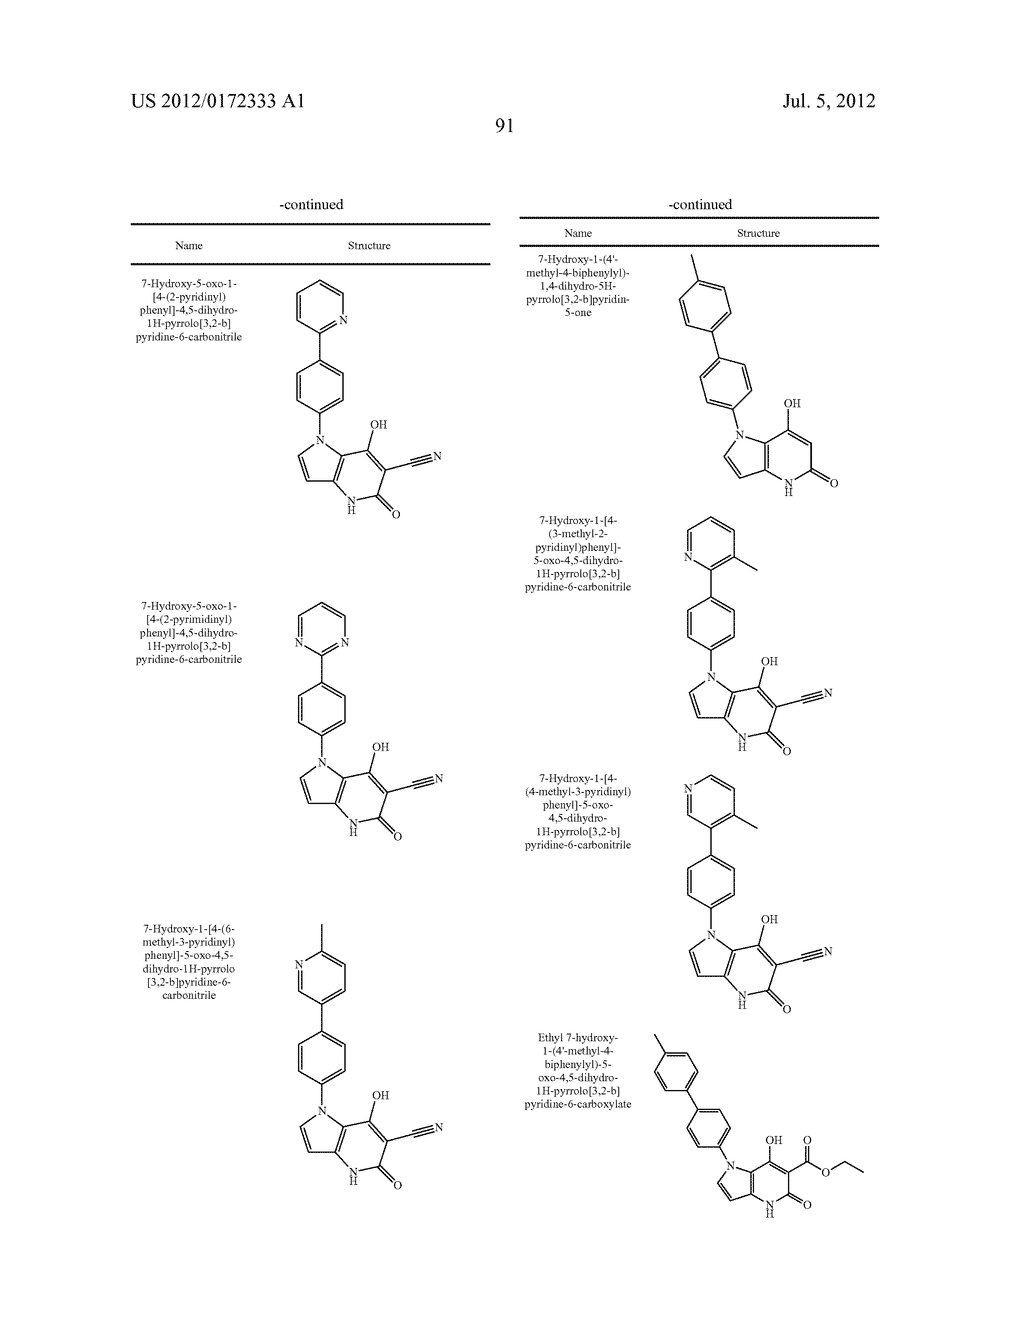 PYRROLO-PYRIDINE DERIVATIVES AS ACTIVATORS OF AMPK - diagram, schematic, and image 92